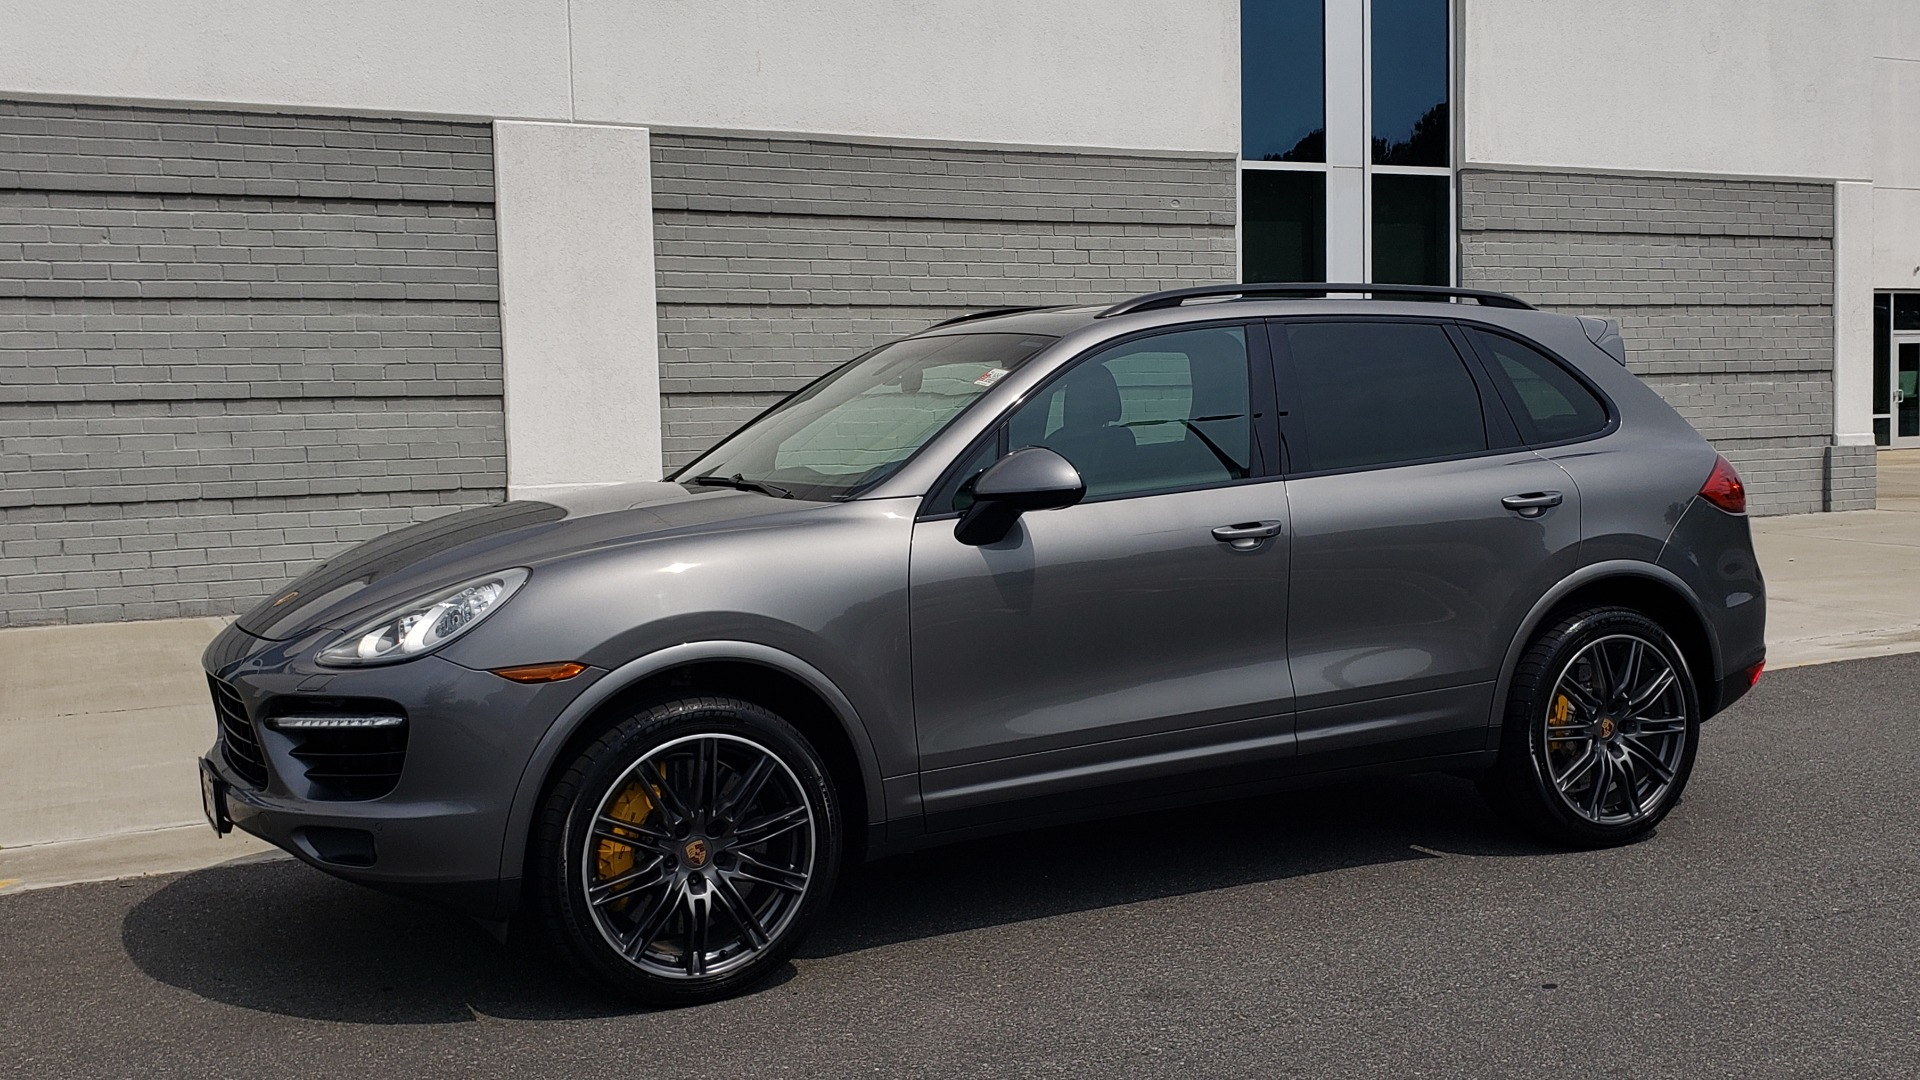 Used 2014 Porsche CAYENNE TURBO S / AWD / NAV / BOSE / PANO-ROOF / LCA / REARVIEW for sale Sold at Formula Imports in Charlotte NC 28227 4